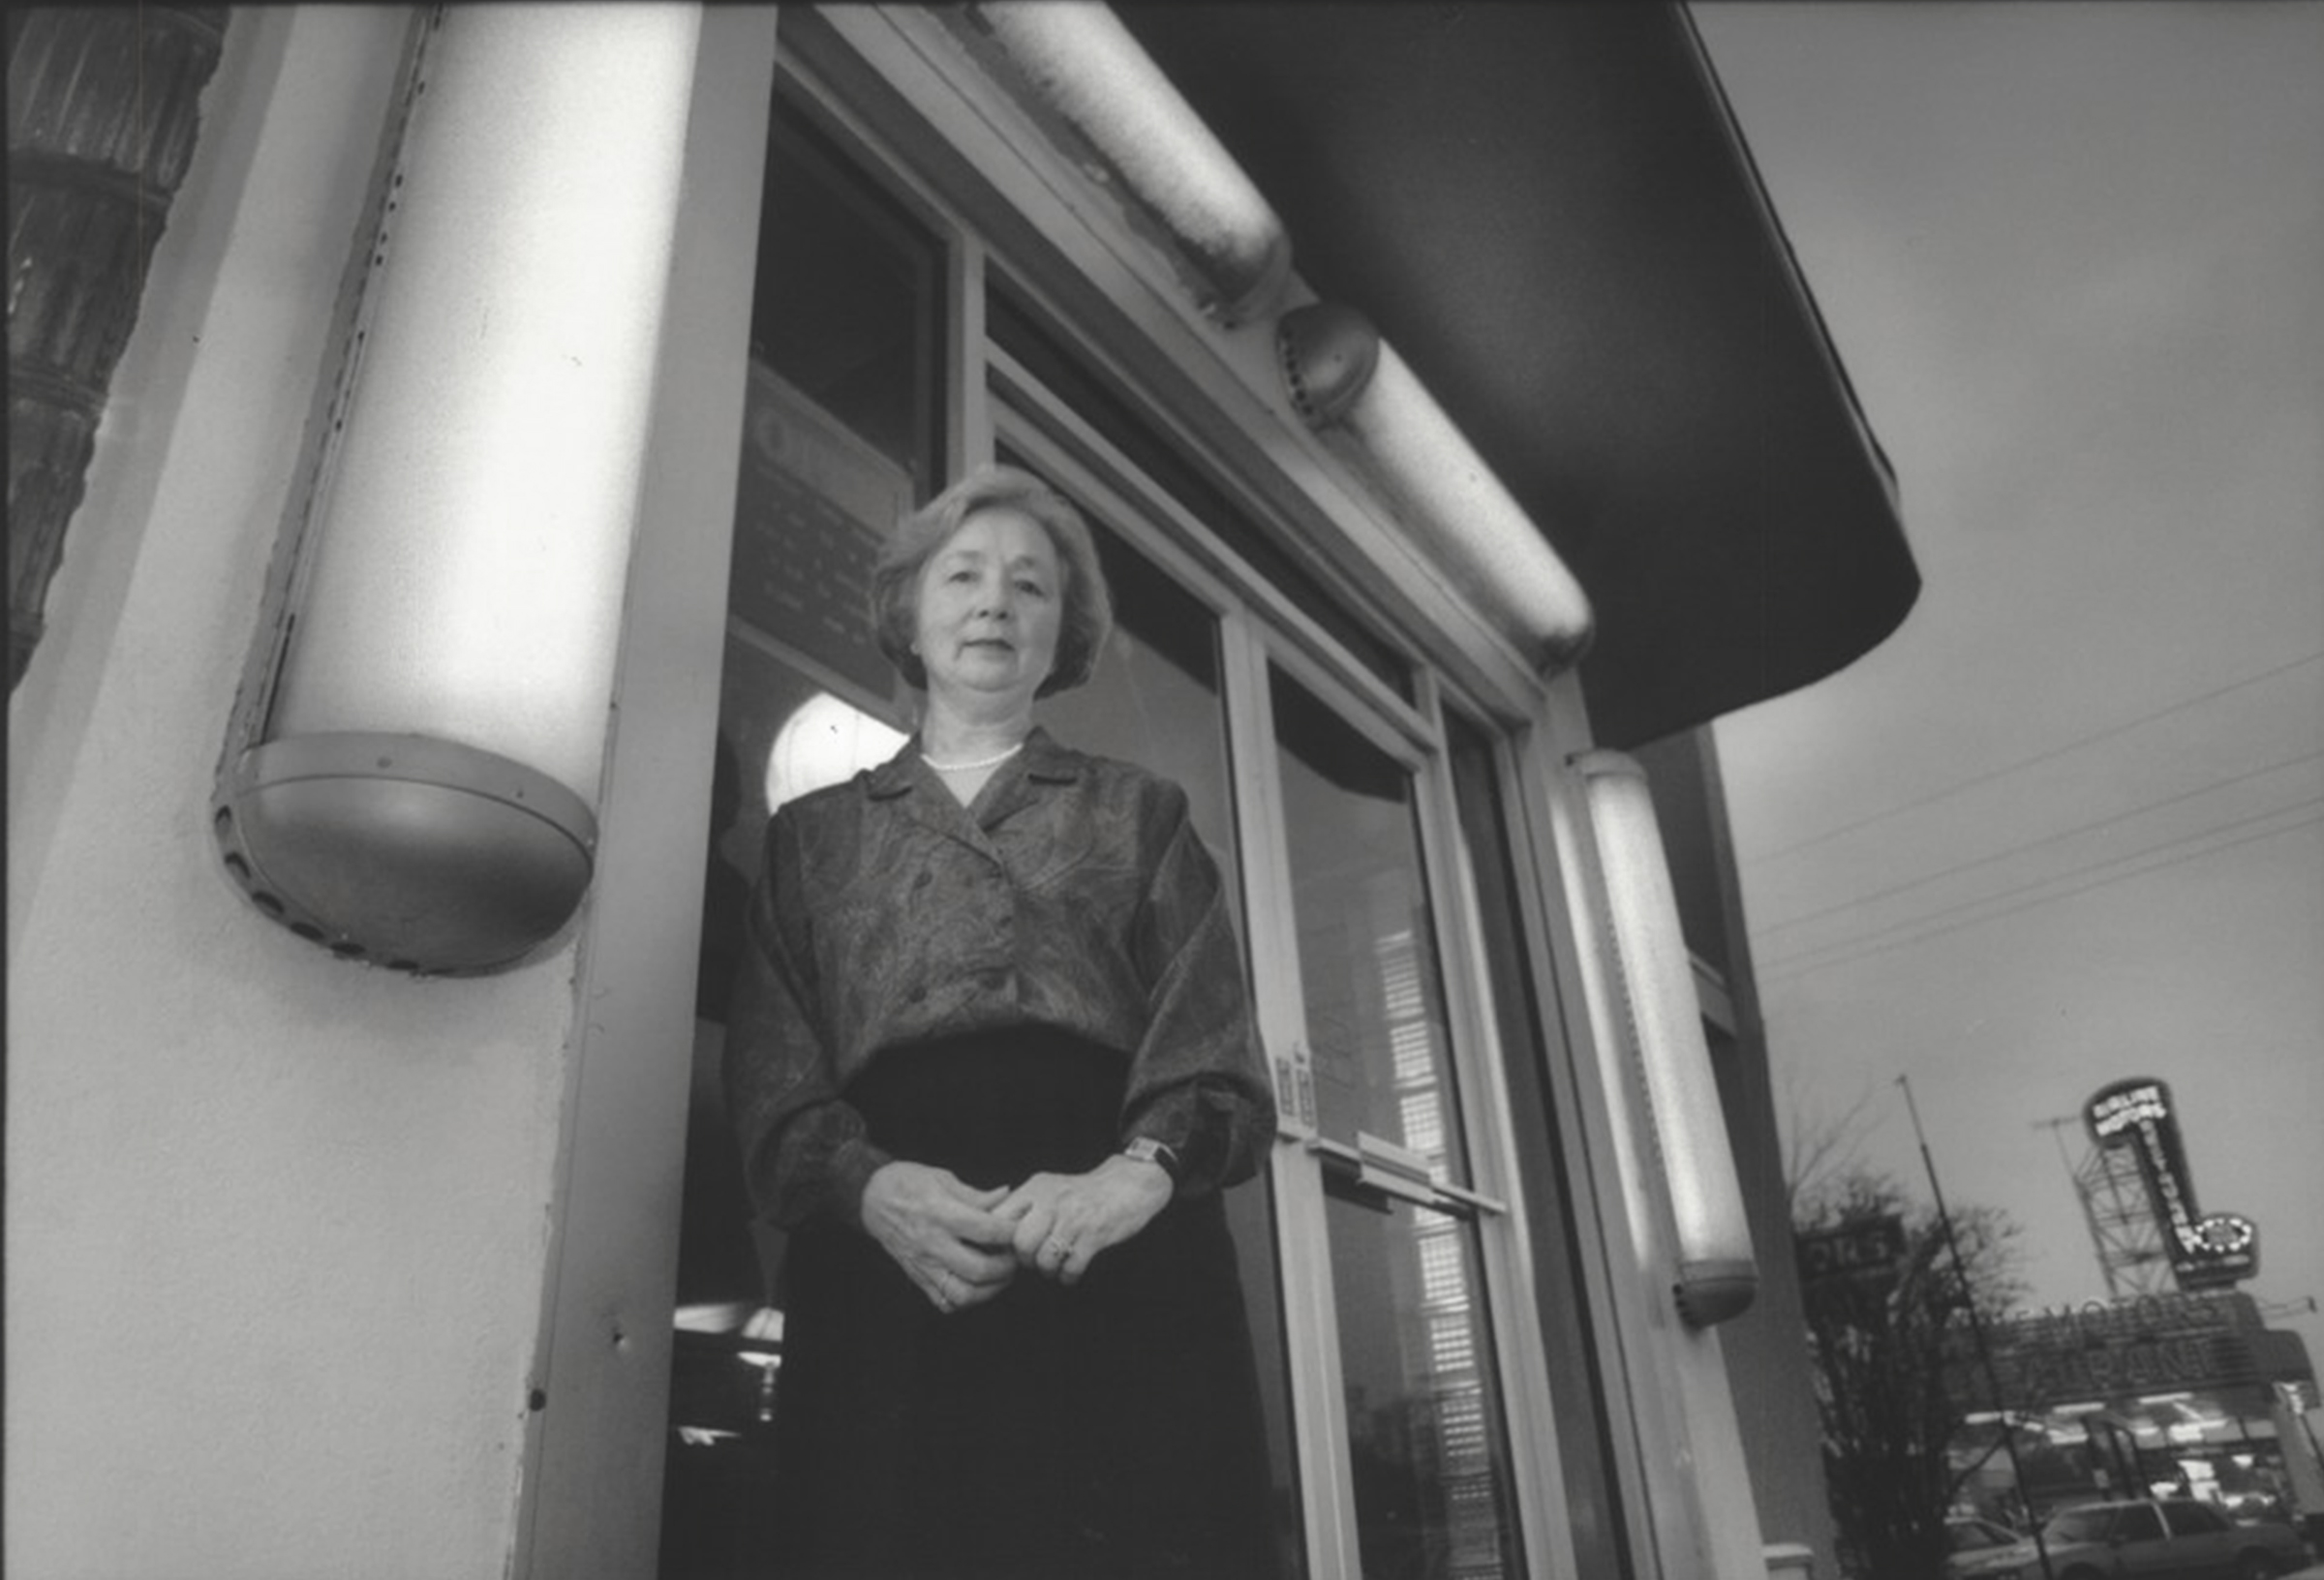 Coo Hachet's family owned and operated the now defunct Roussel's Restaurant. The restaurant was in its heyday when Airline Highway was the main road west from New Orleans. She stands in front of the building on Airline Highway that, in 1992 when this photo was taken, was the Garden Wong. (Photo by Leslie White, NOLA.com | The Times-Picayune)